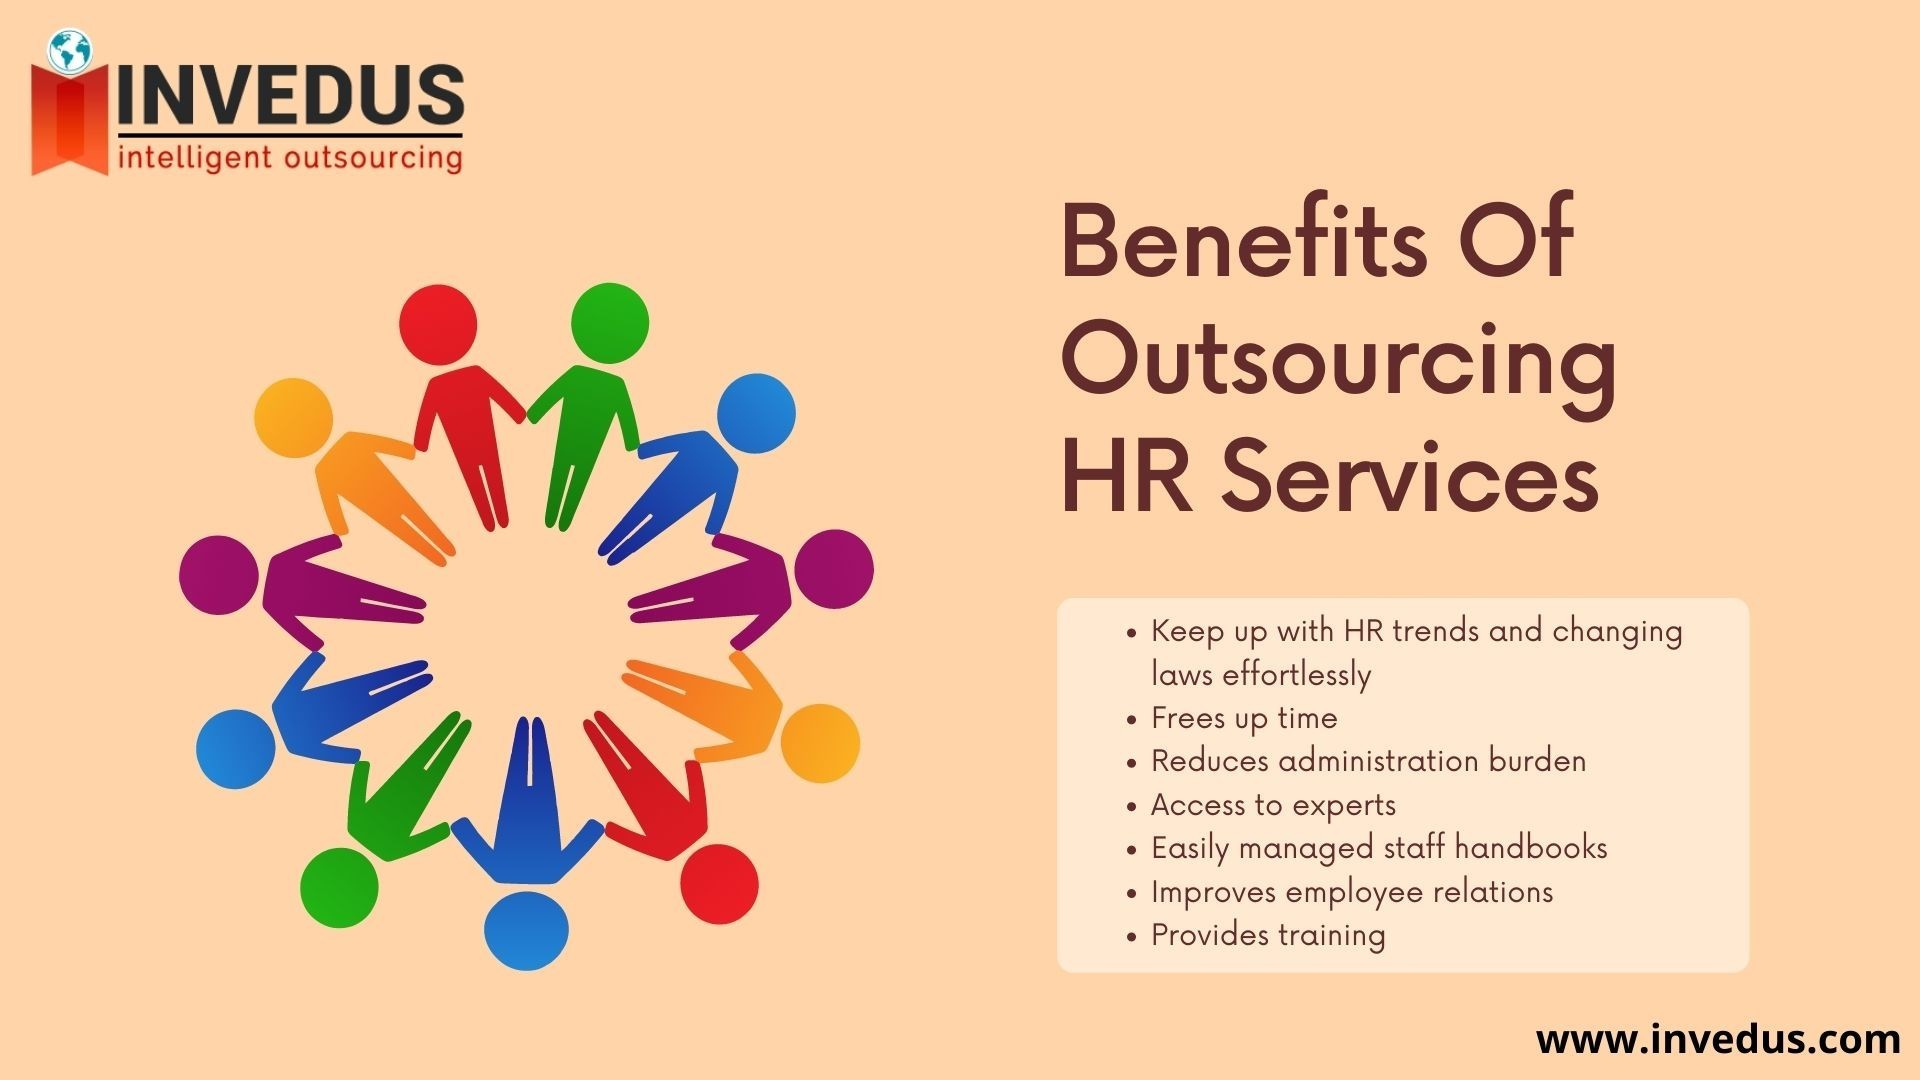 Benefits Of Outsourcing HR Services